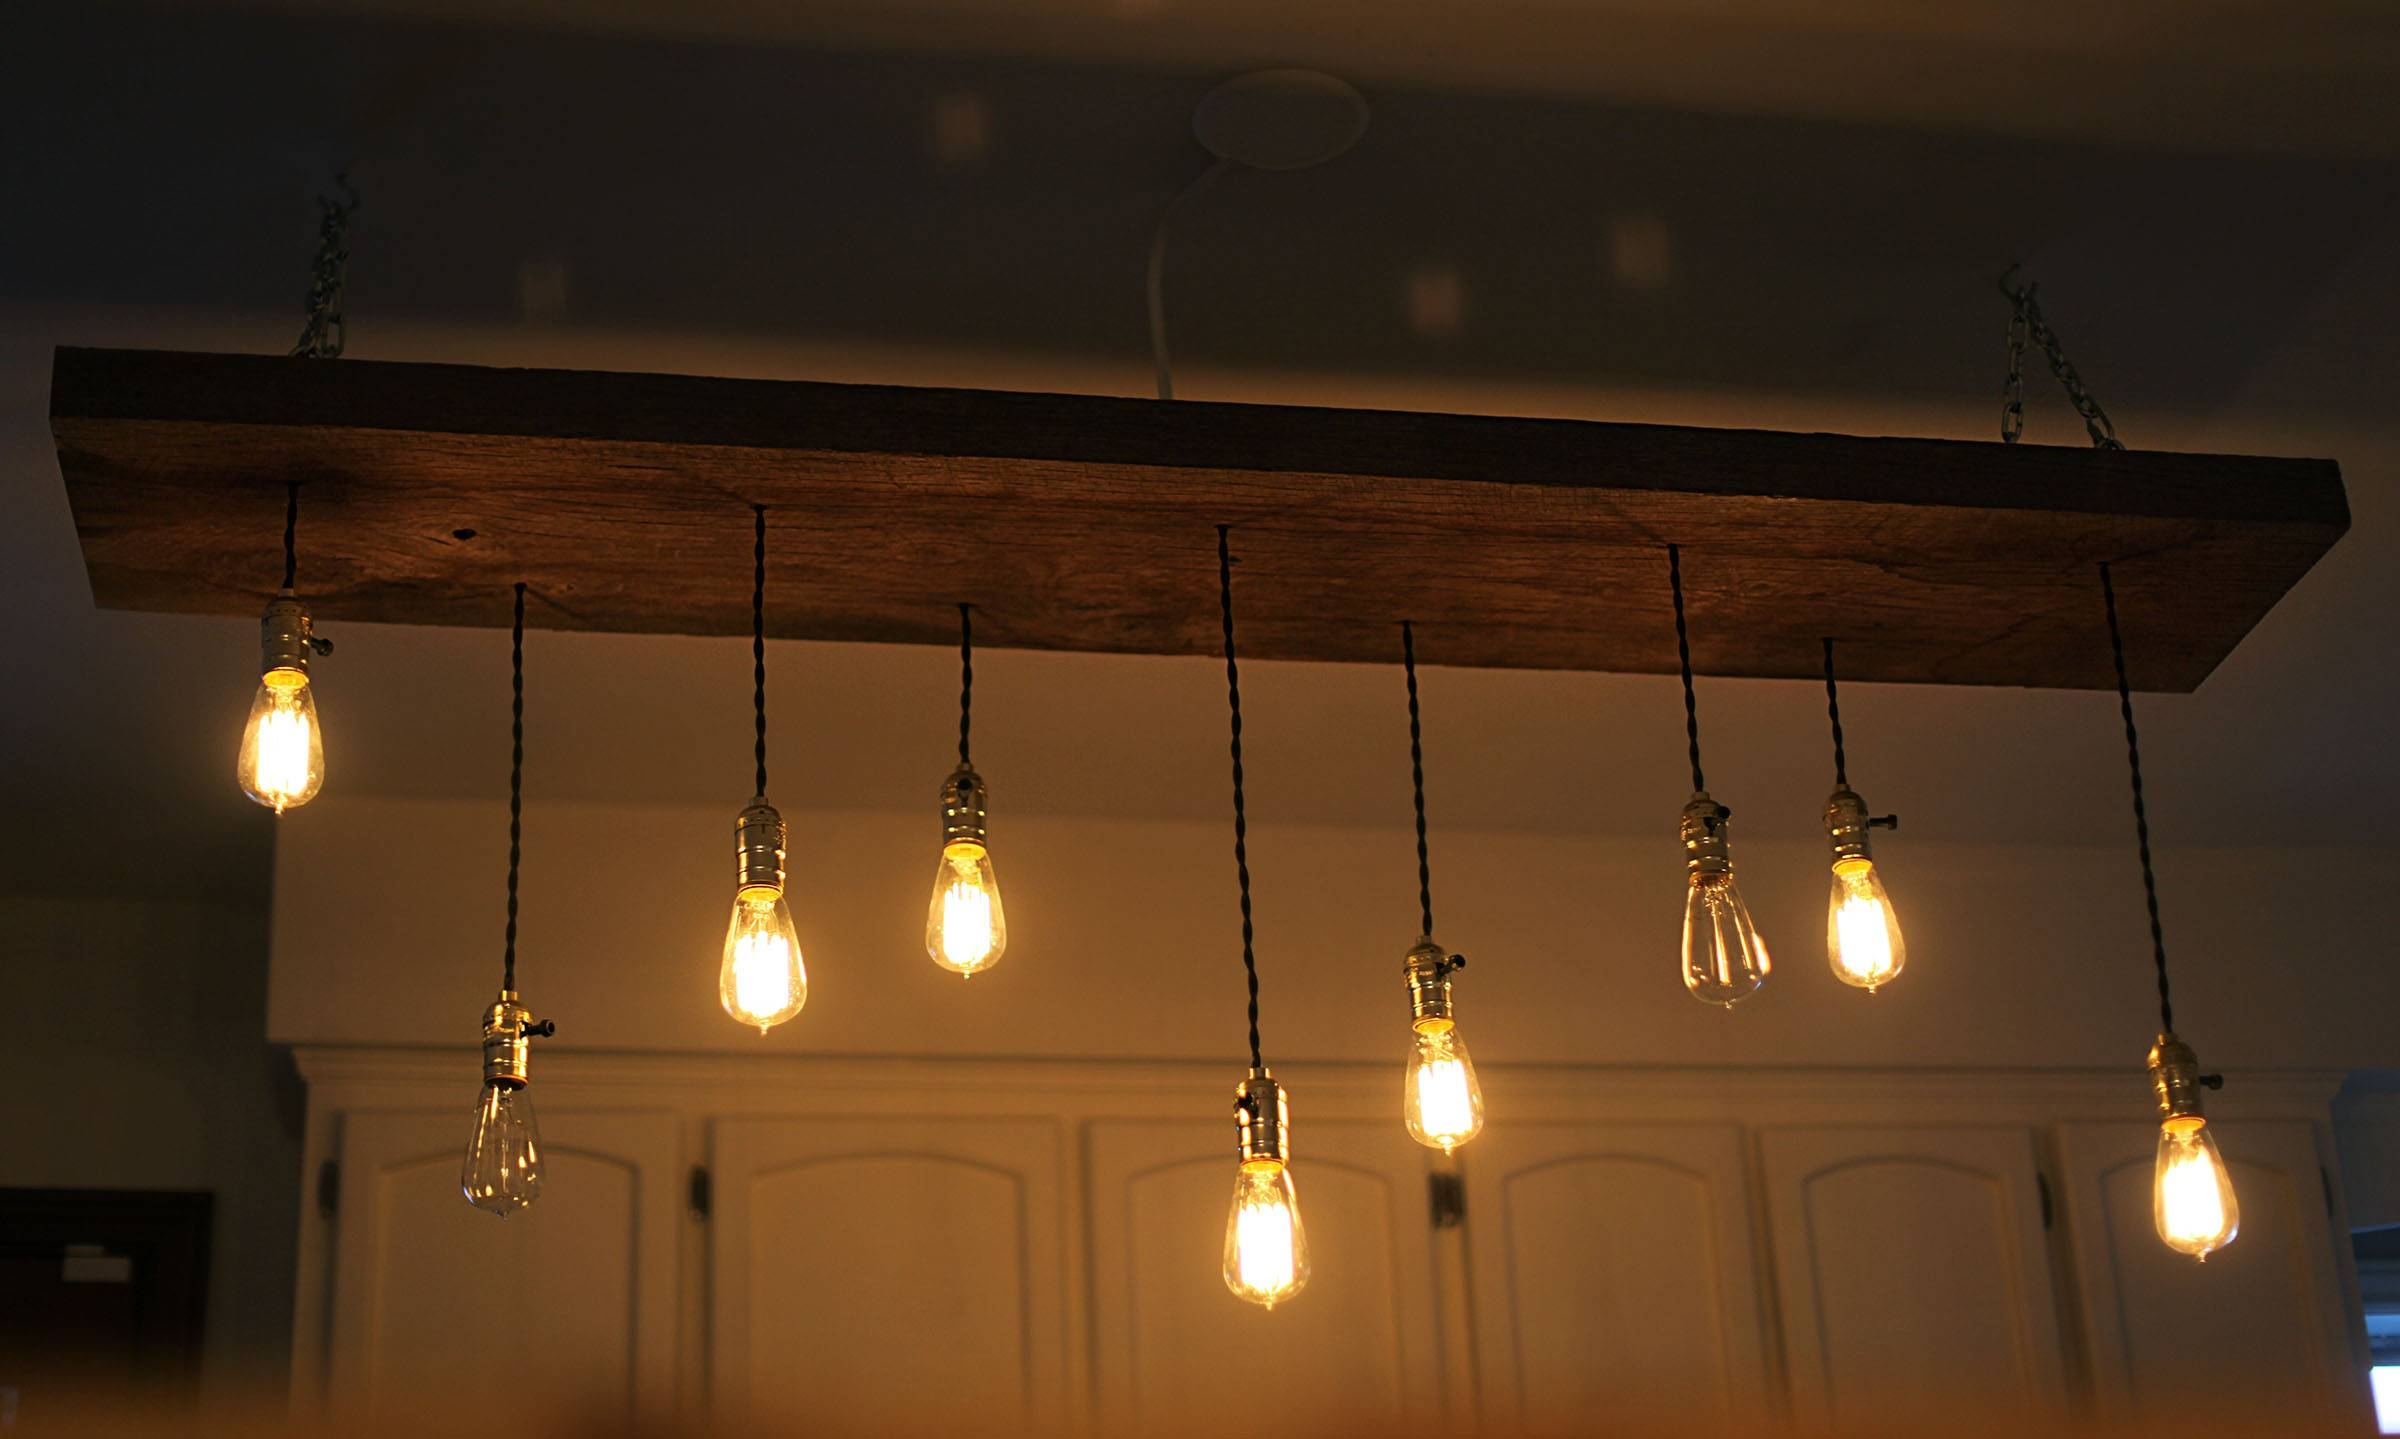 Diy Reclaimed Lumber Hanging Edison Bulb Chandelier | Unmaintained throughout Bare Bulb Pendant Lights Fixtures (Image 6 of 15)